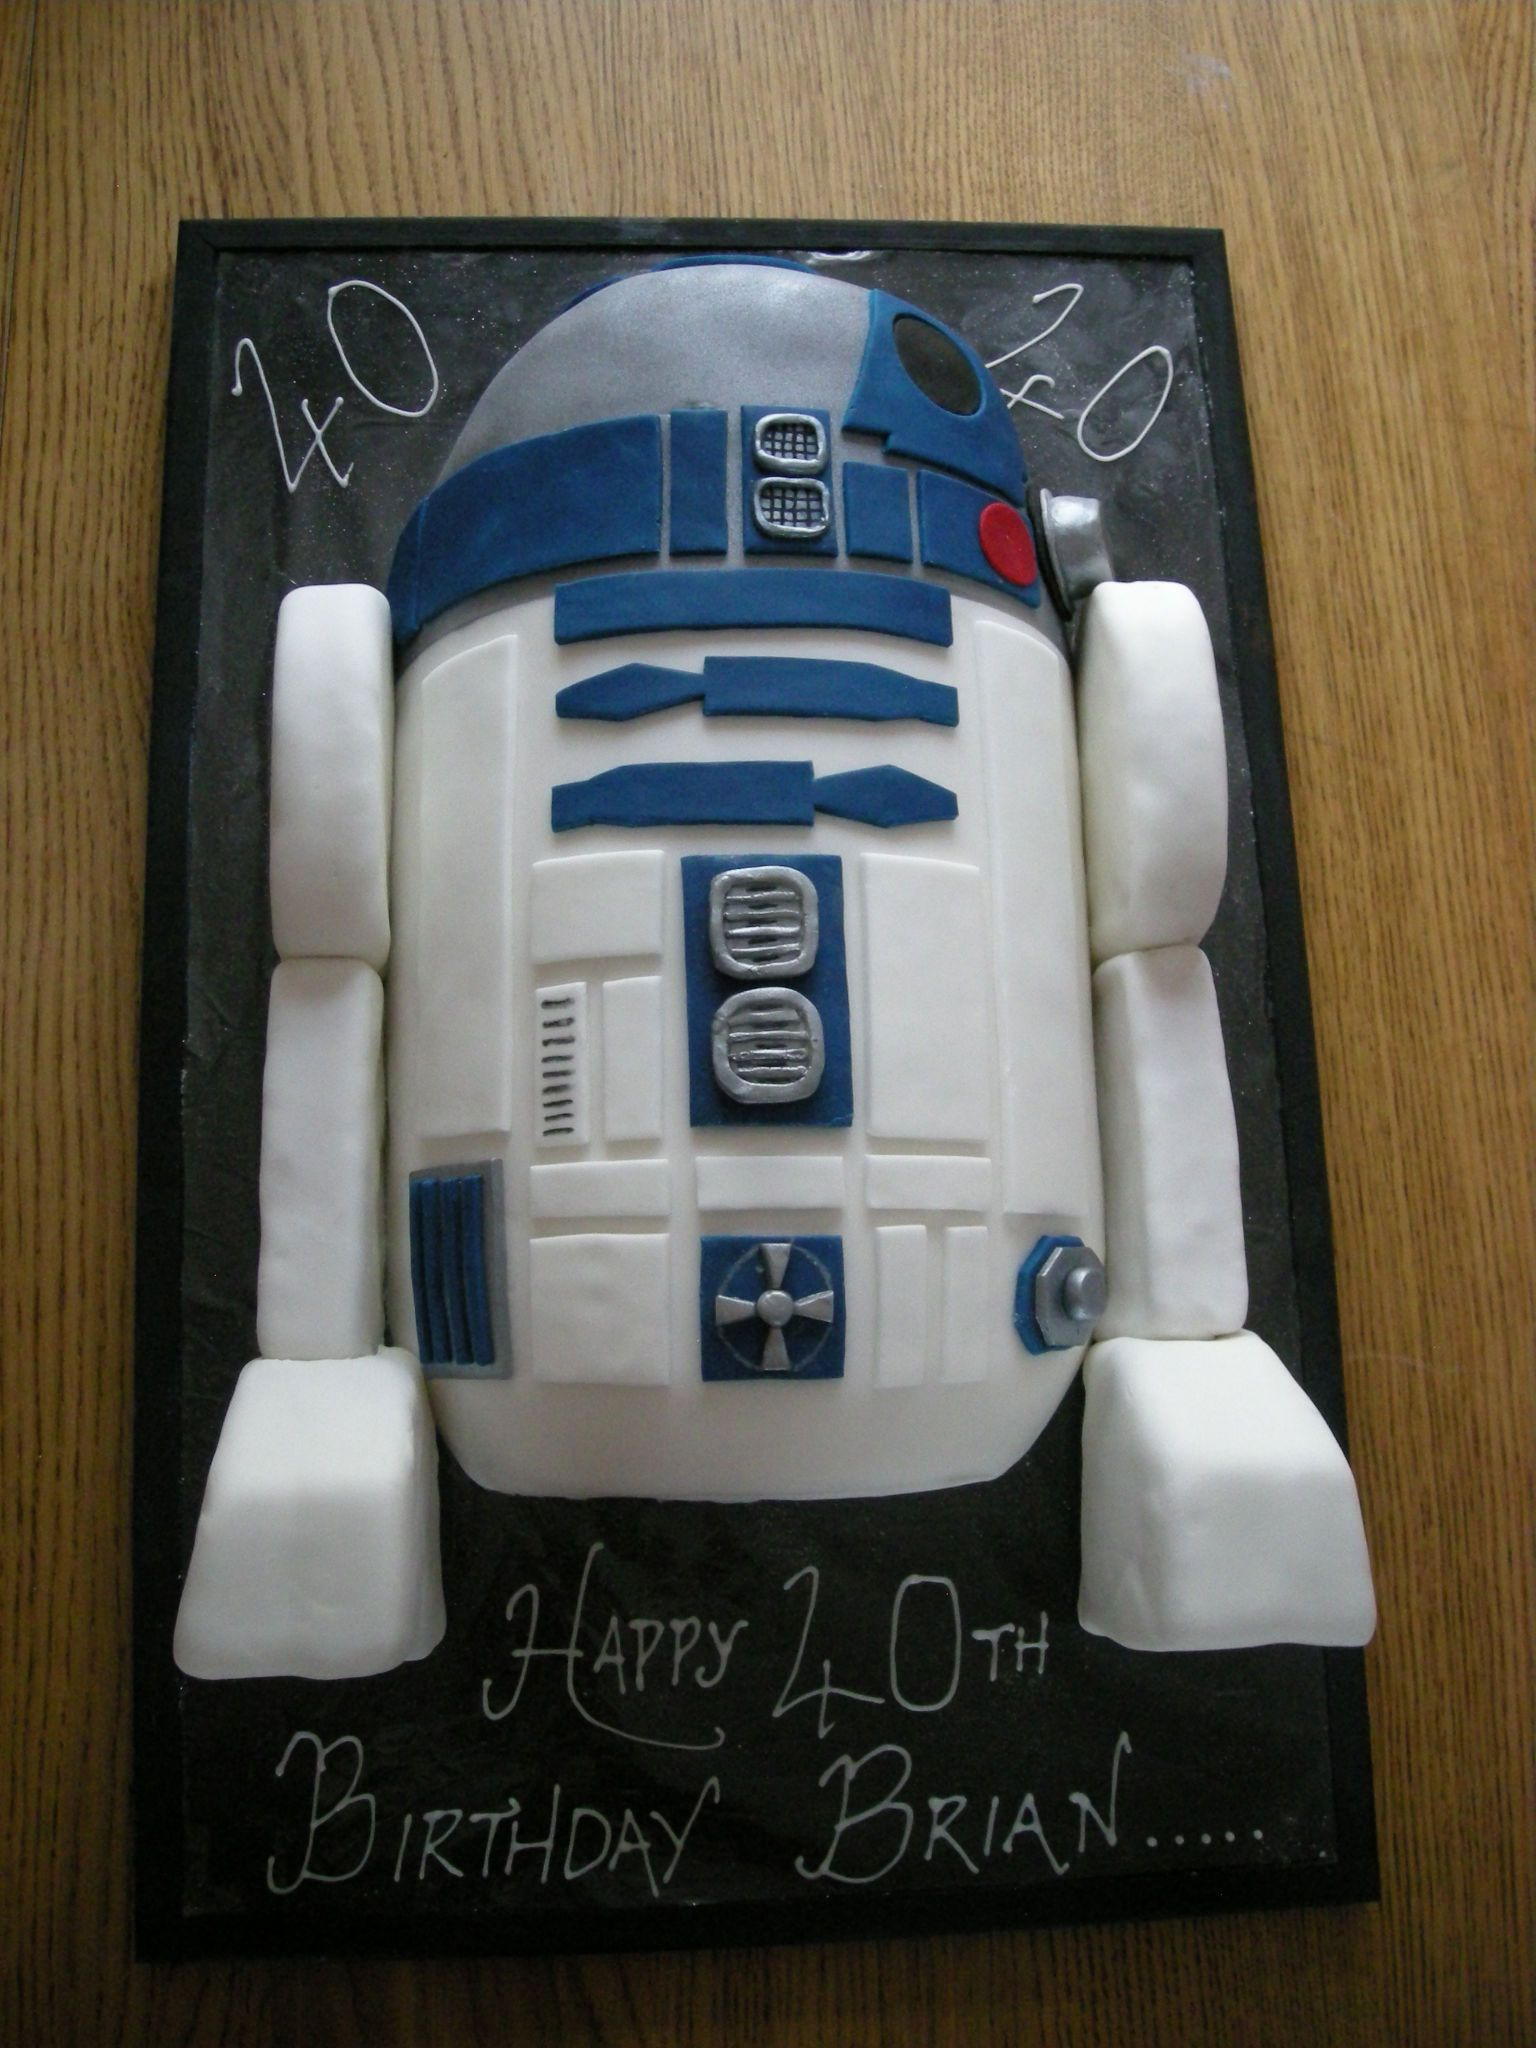 My Aunts Awesome Homemade R2d2 Cake Im Bias But I Think It Rocks